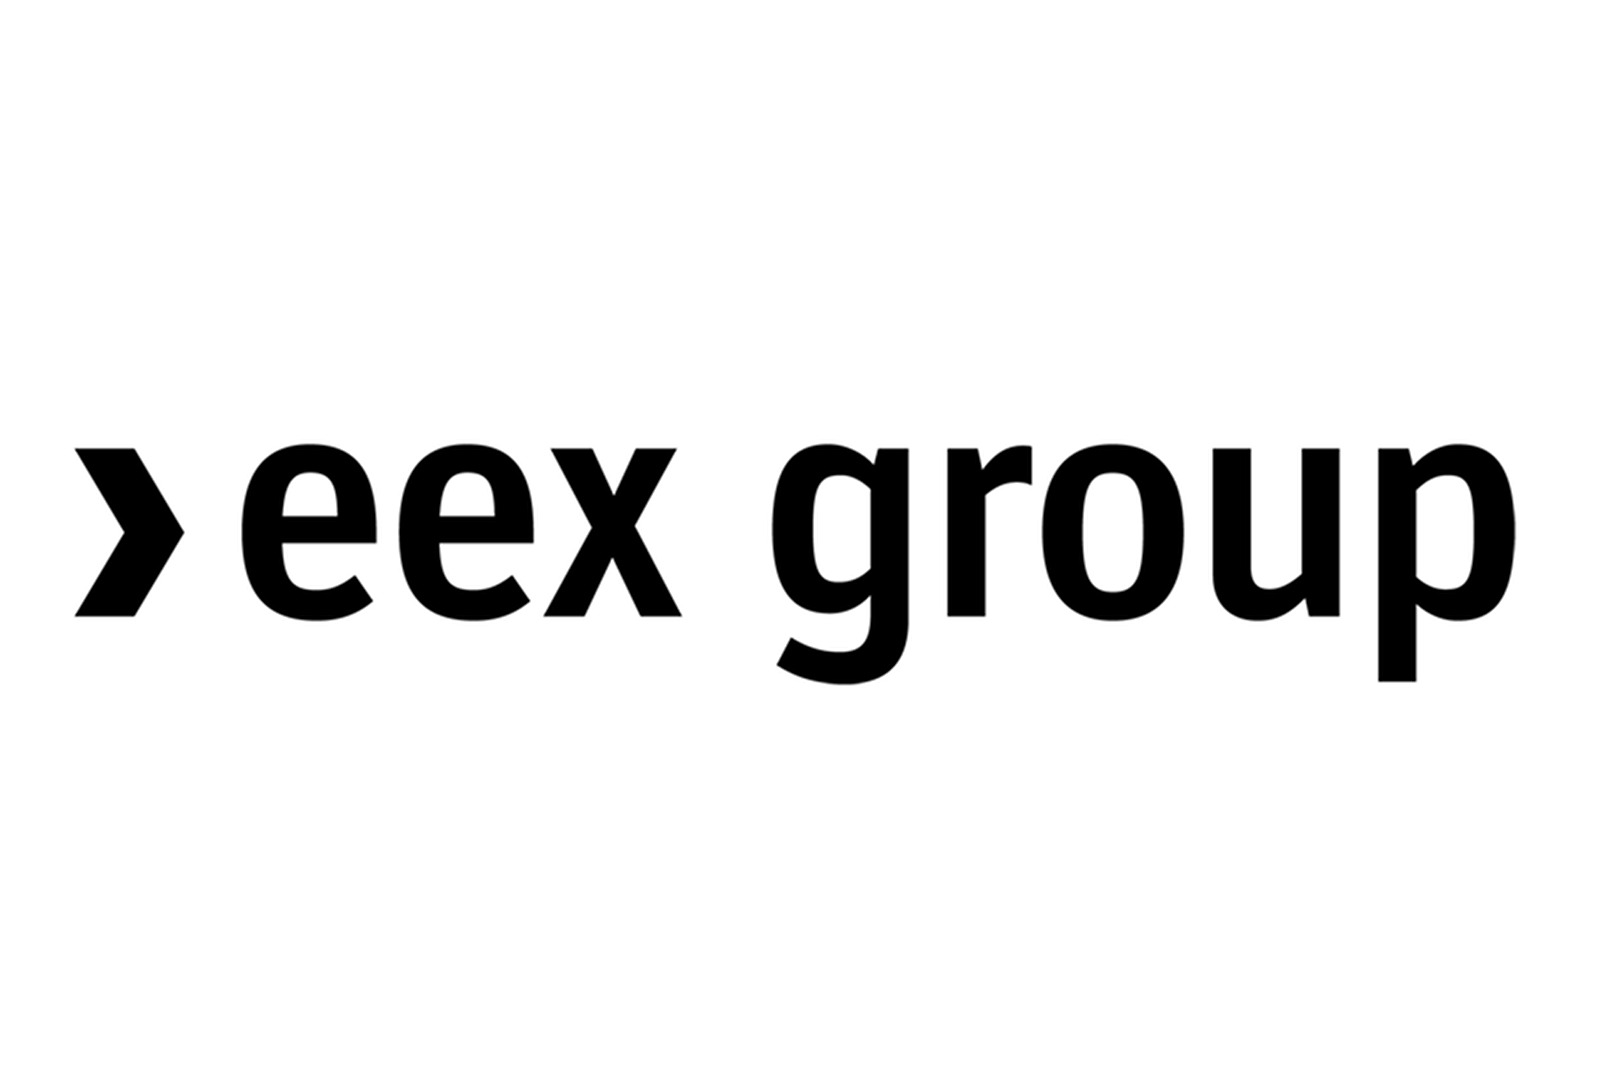 Logo eex group